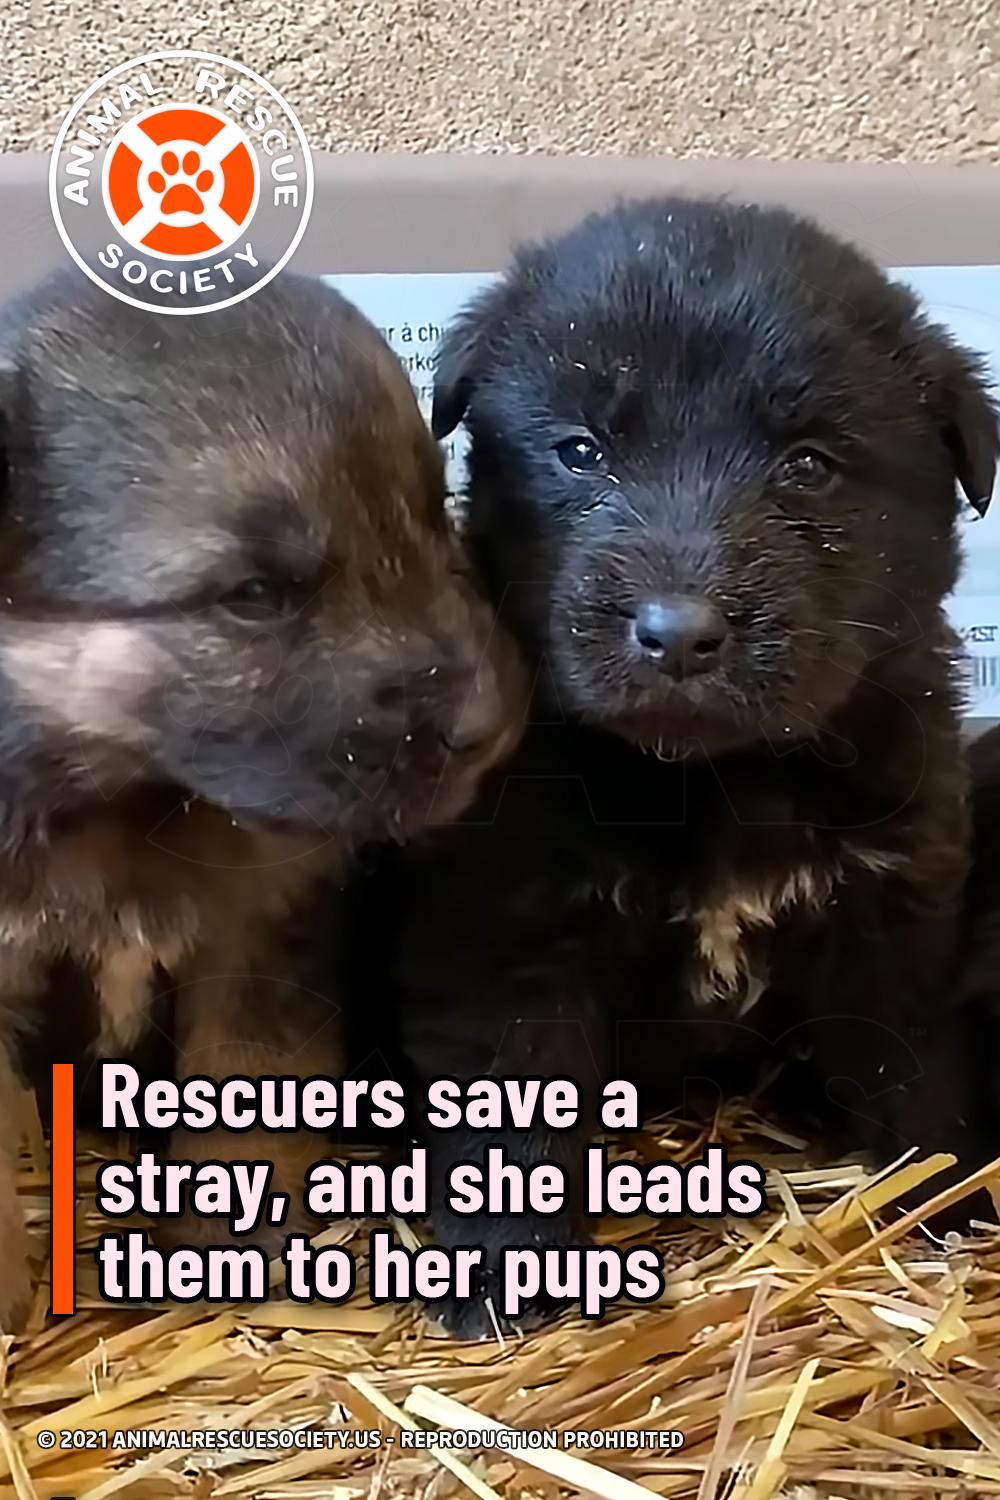 Rescuers save a stray, and she leads them to her pups